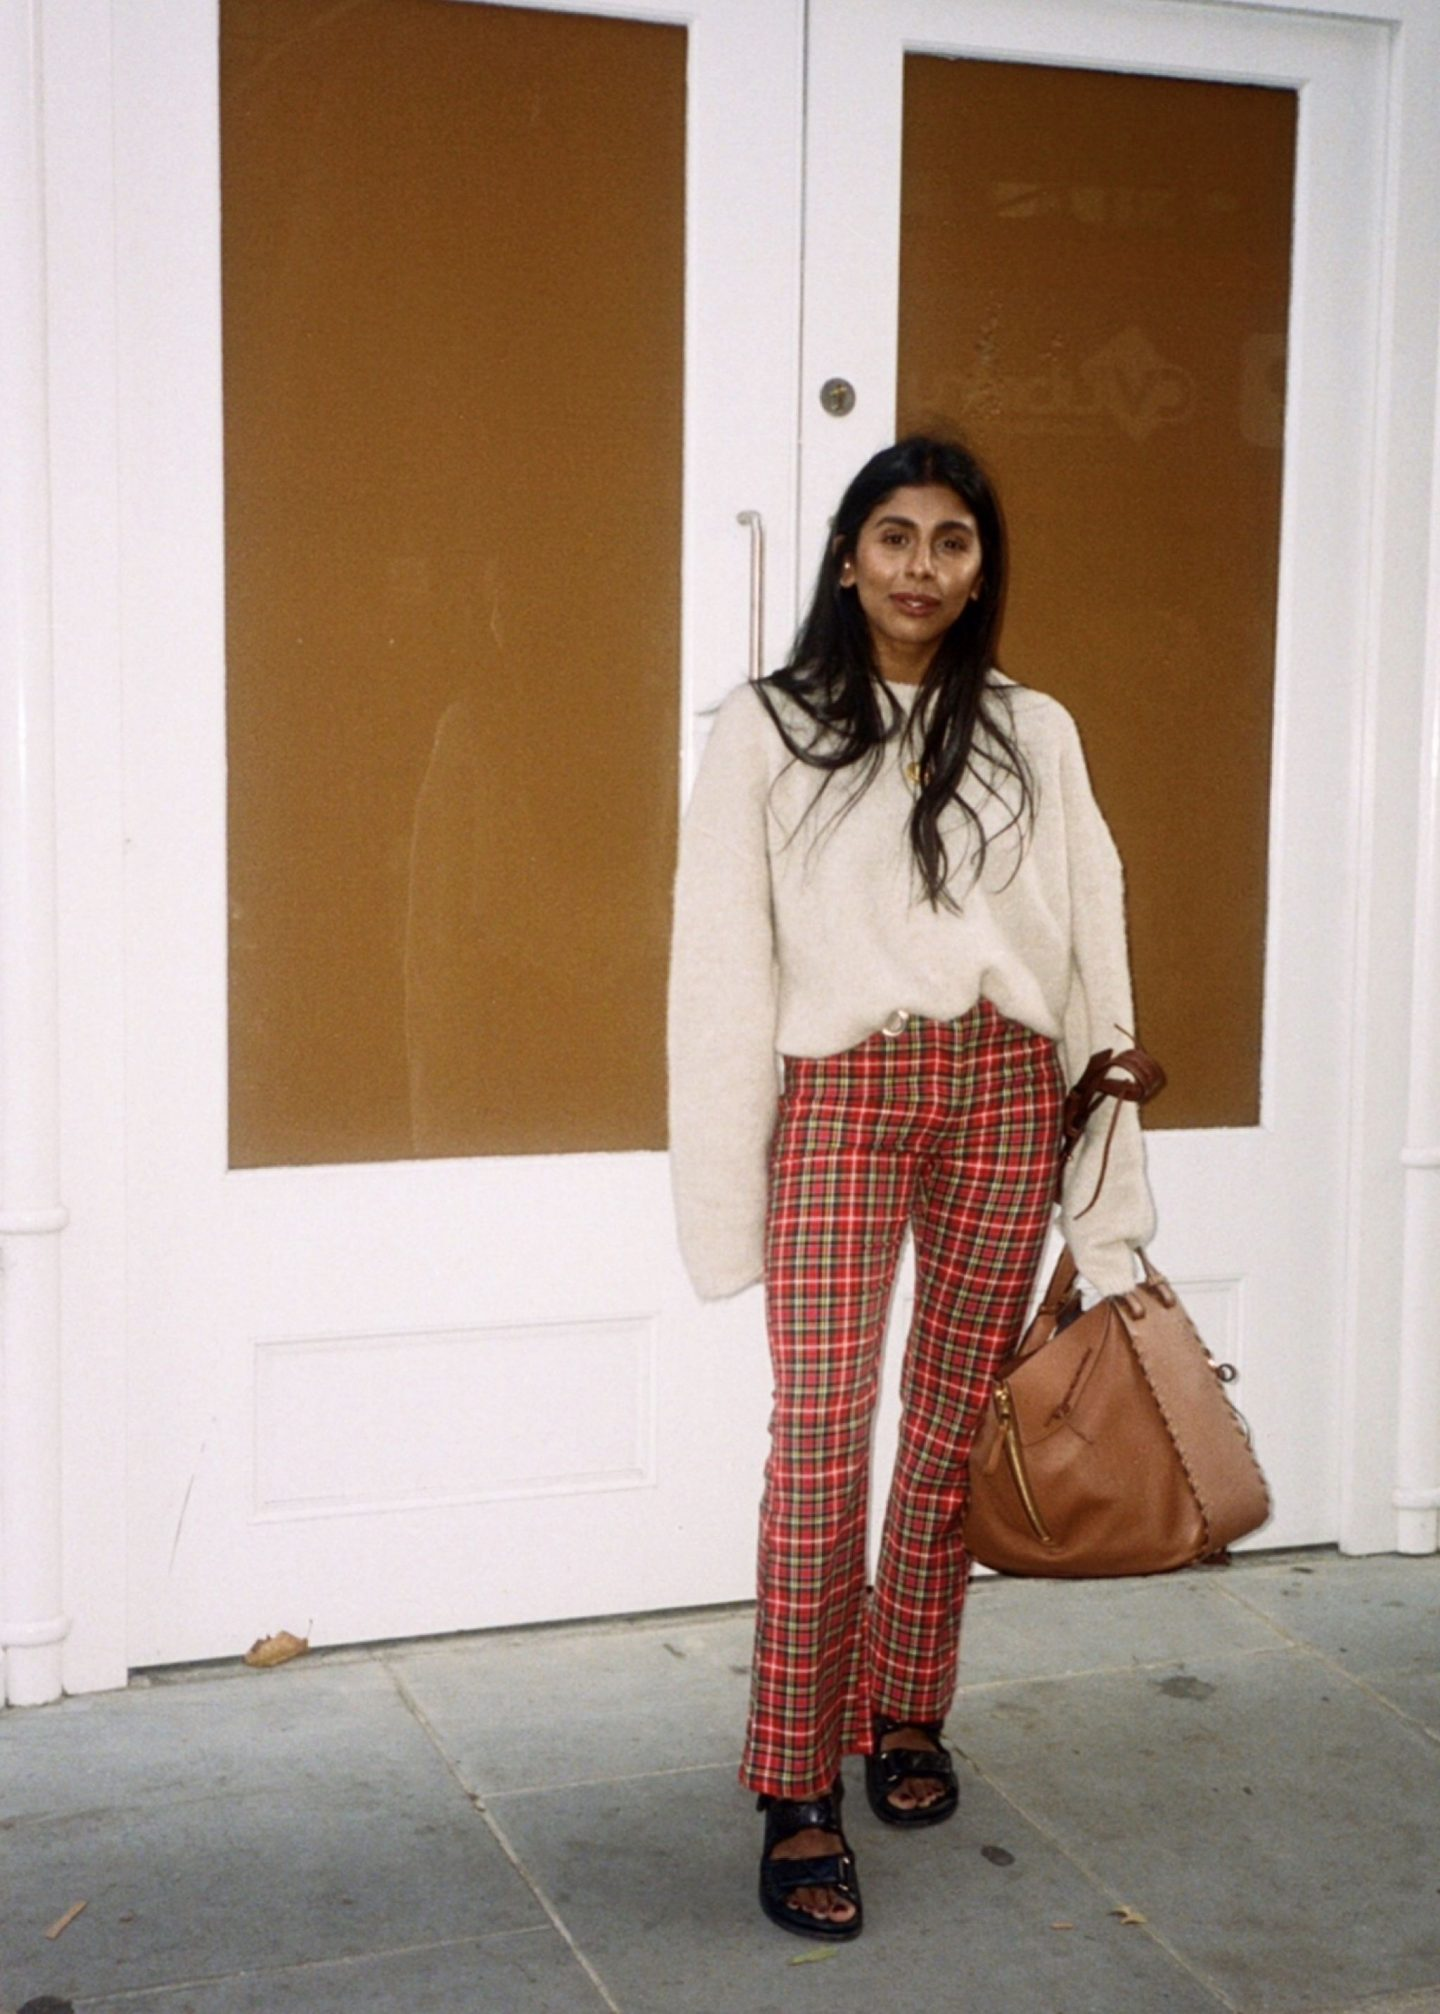 THE BEST PATTERN TROUSERS